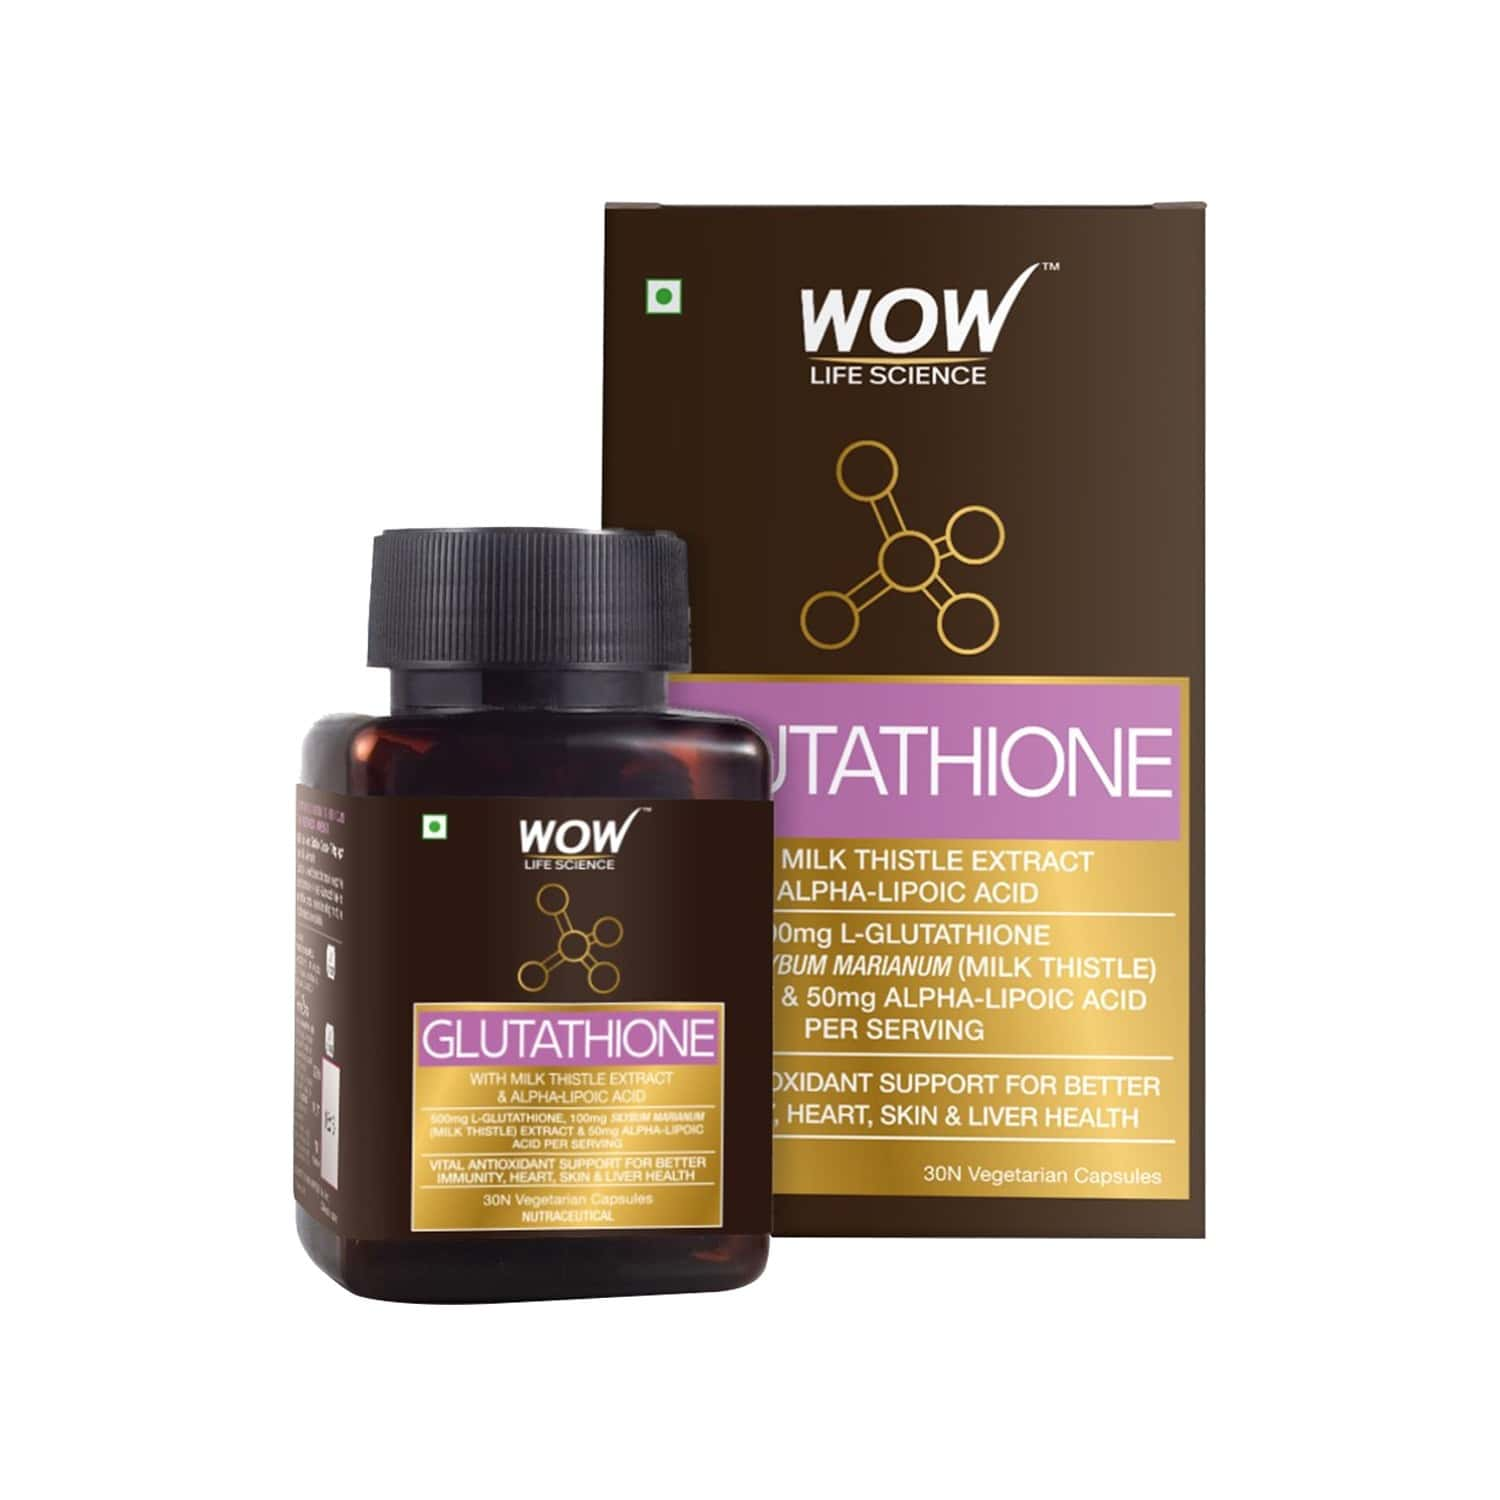 Wow Life Science Glutathione With Milk Thistle Extract 500 Mg - 30 Vegetarian Capsules